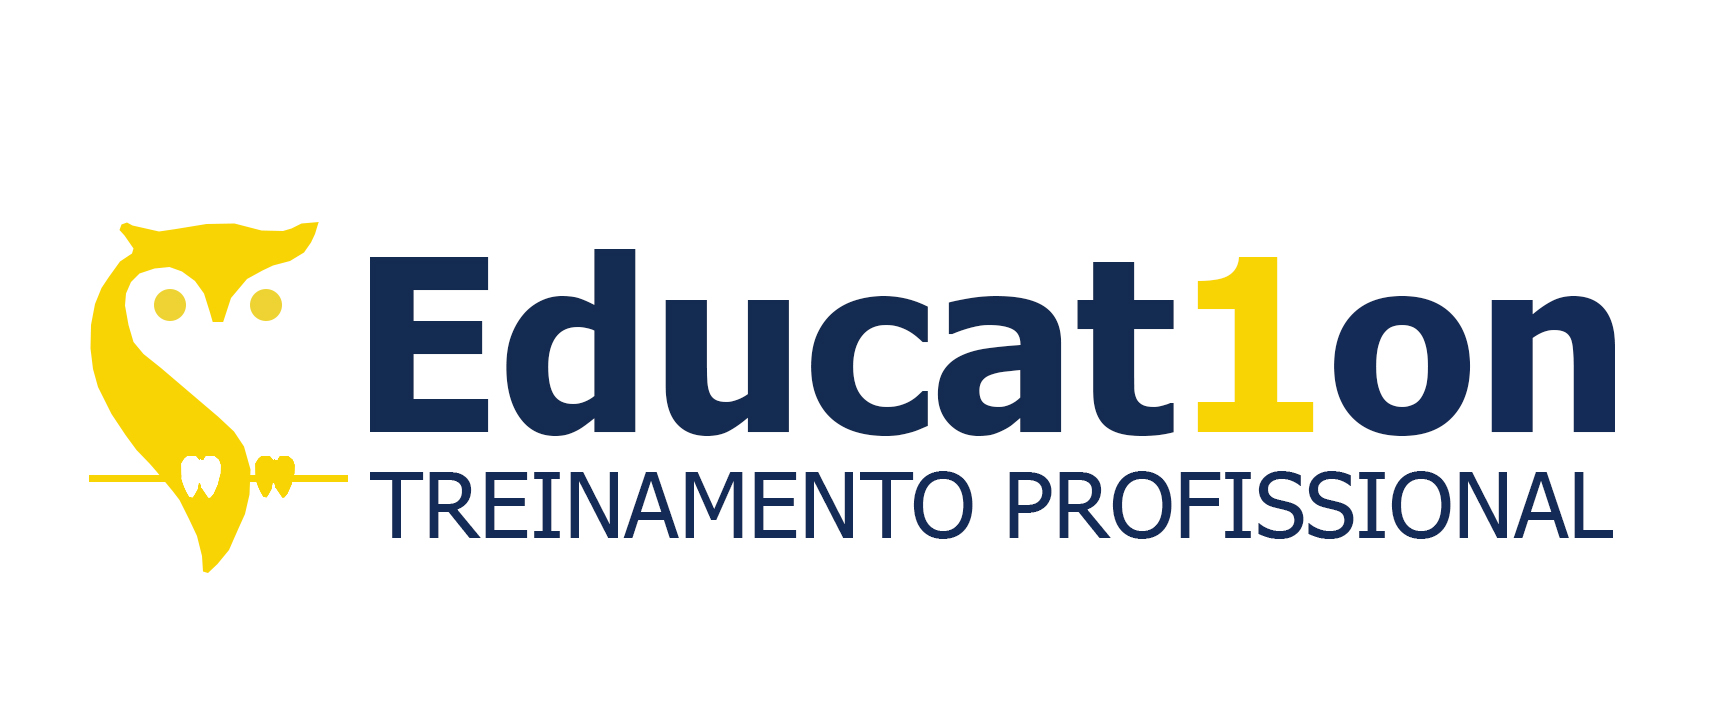 Educat1on